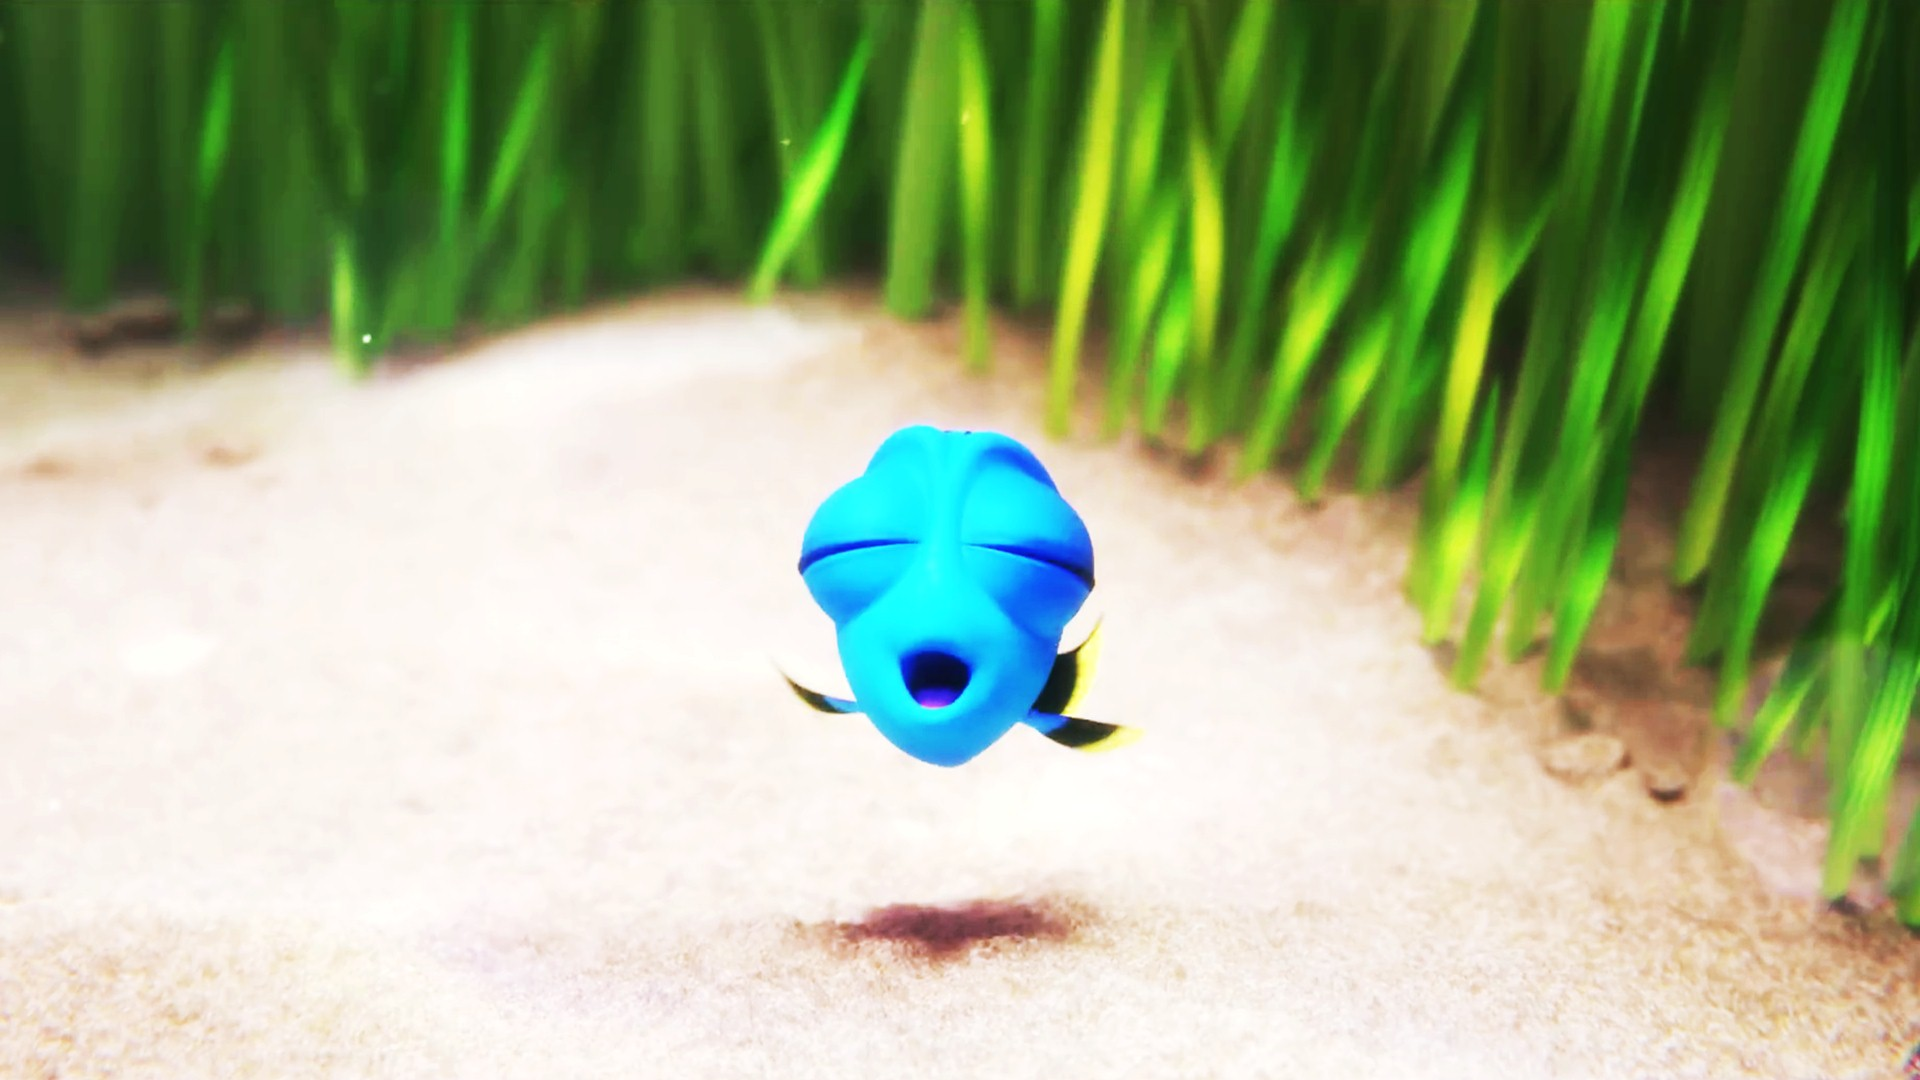 download Finding Dory Wallpapers 30 Wallpapers Adorable 1920x1080